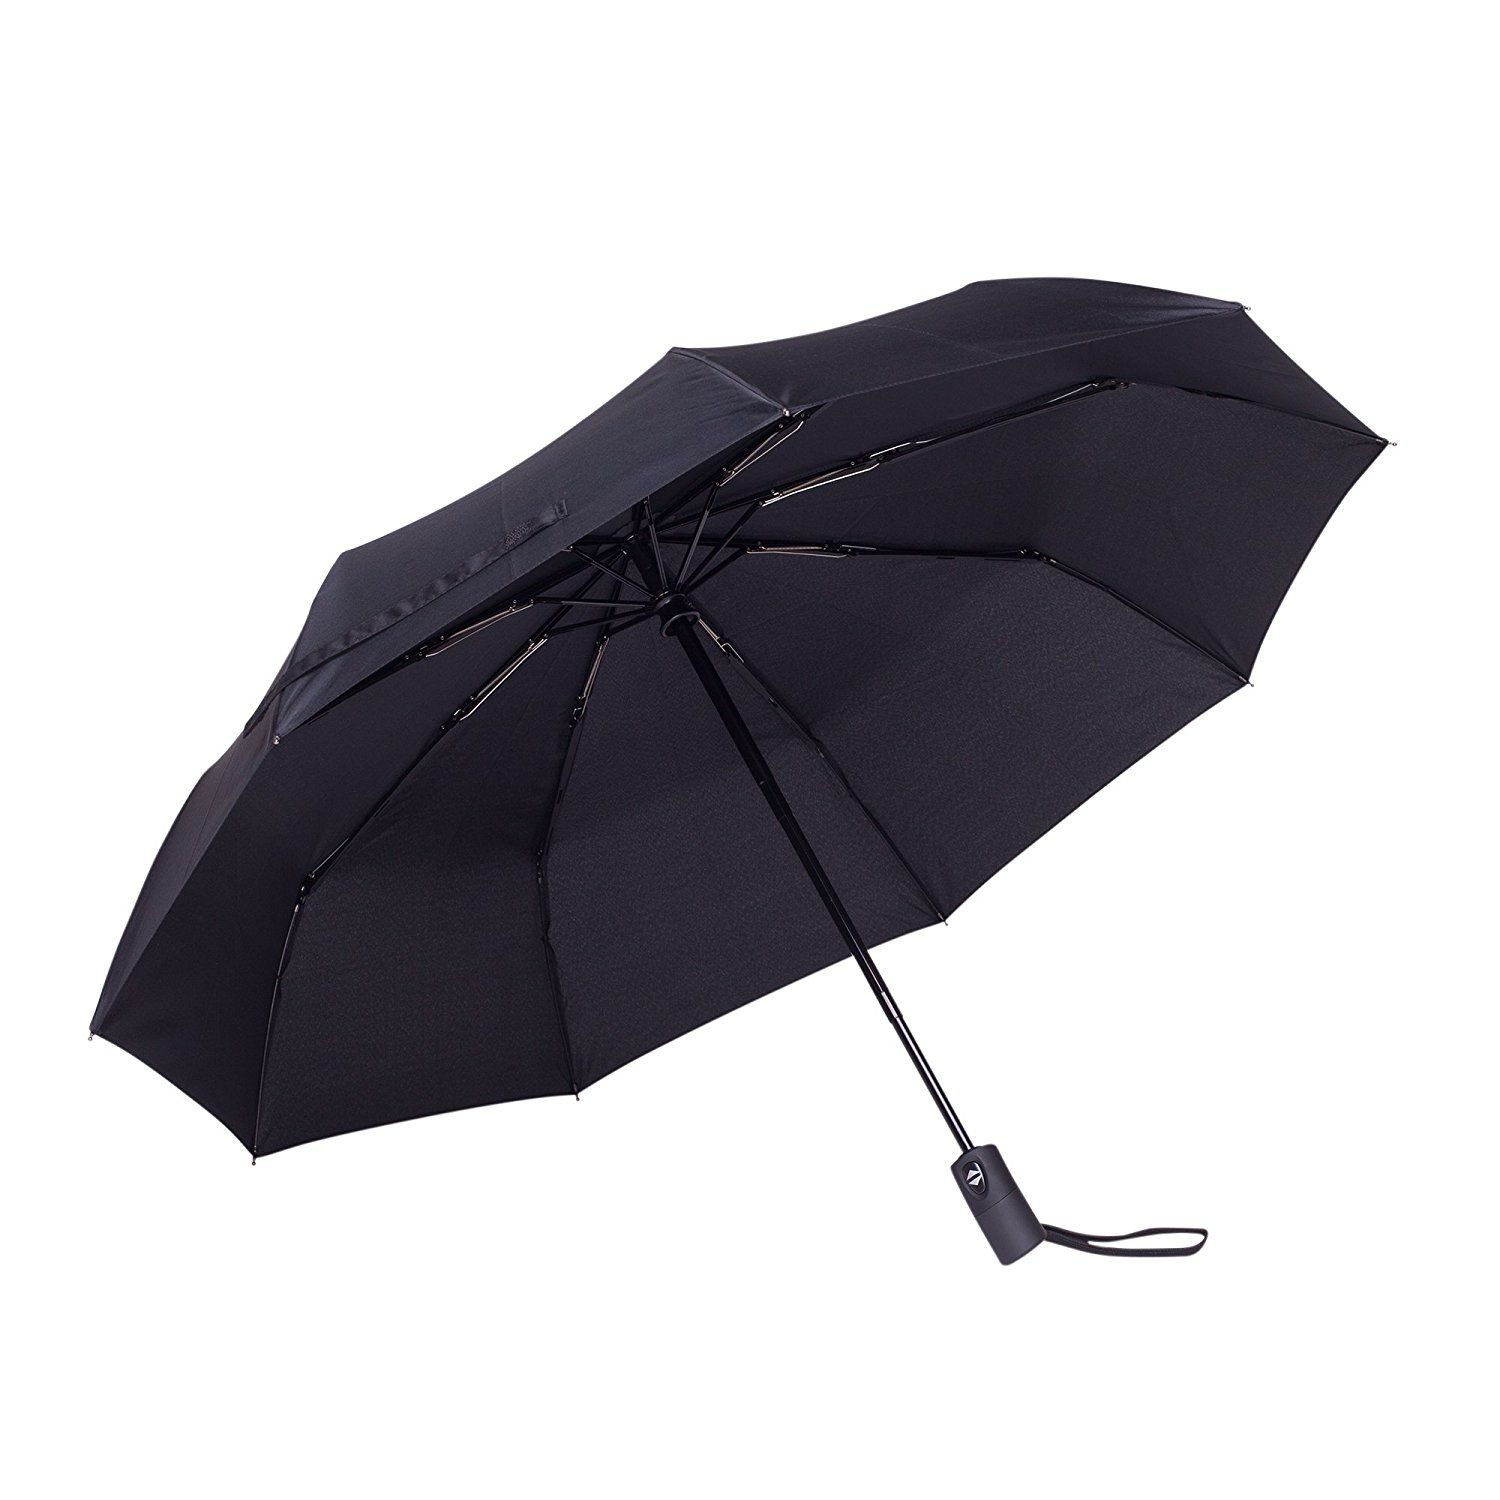 354f3e3a635a The 7 Best Travel Umbrellas of 2019